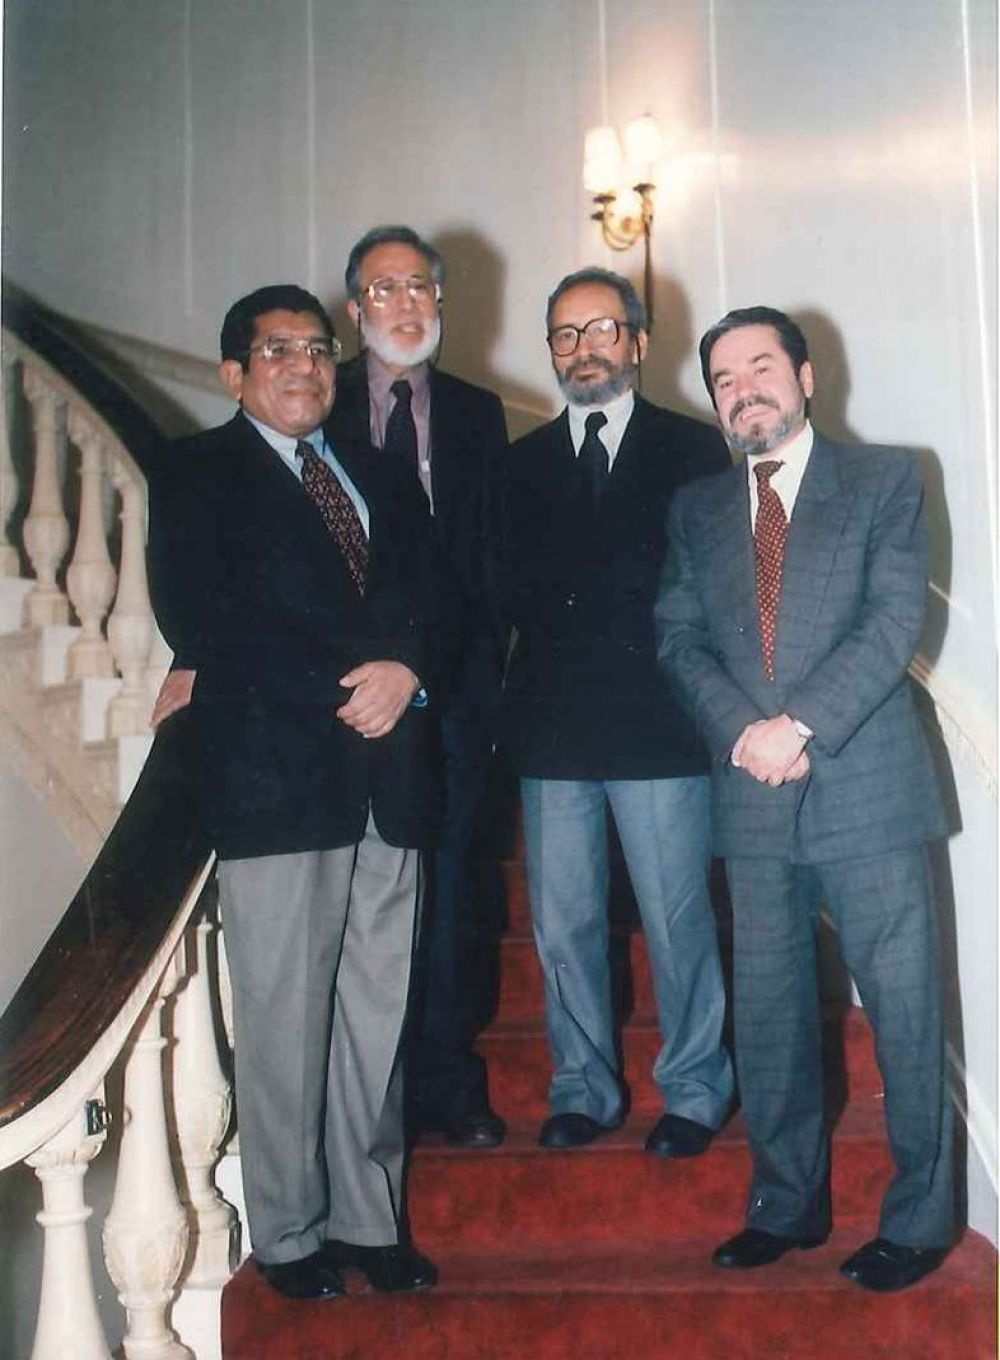 Gregorio Martínez, Washington D.C., 1997